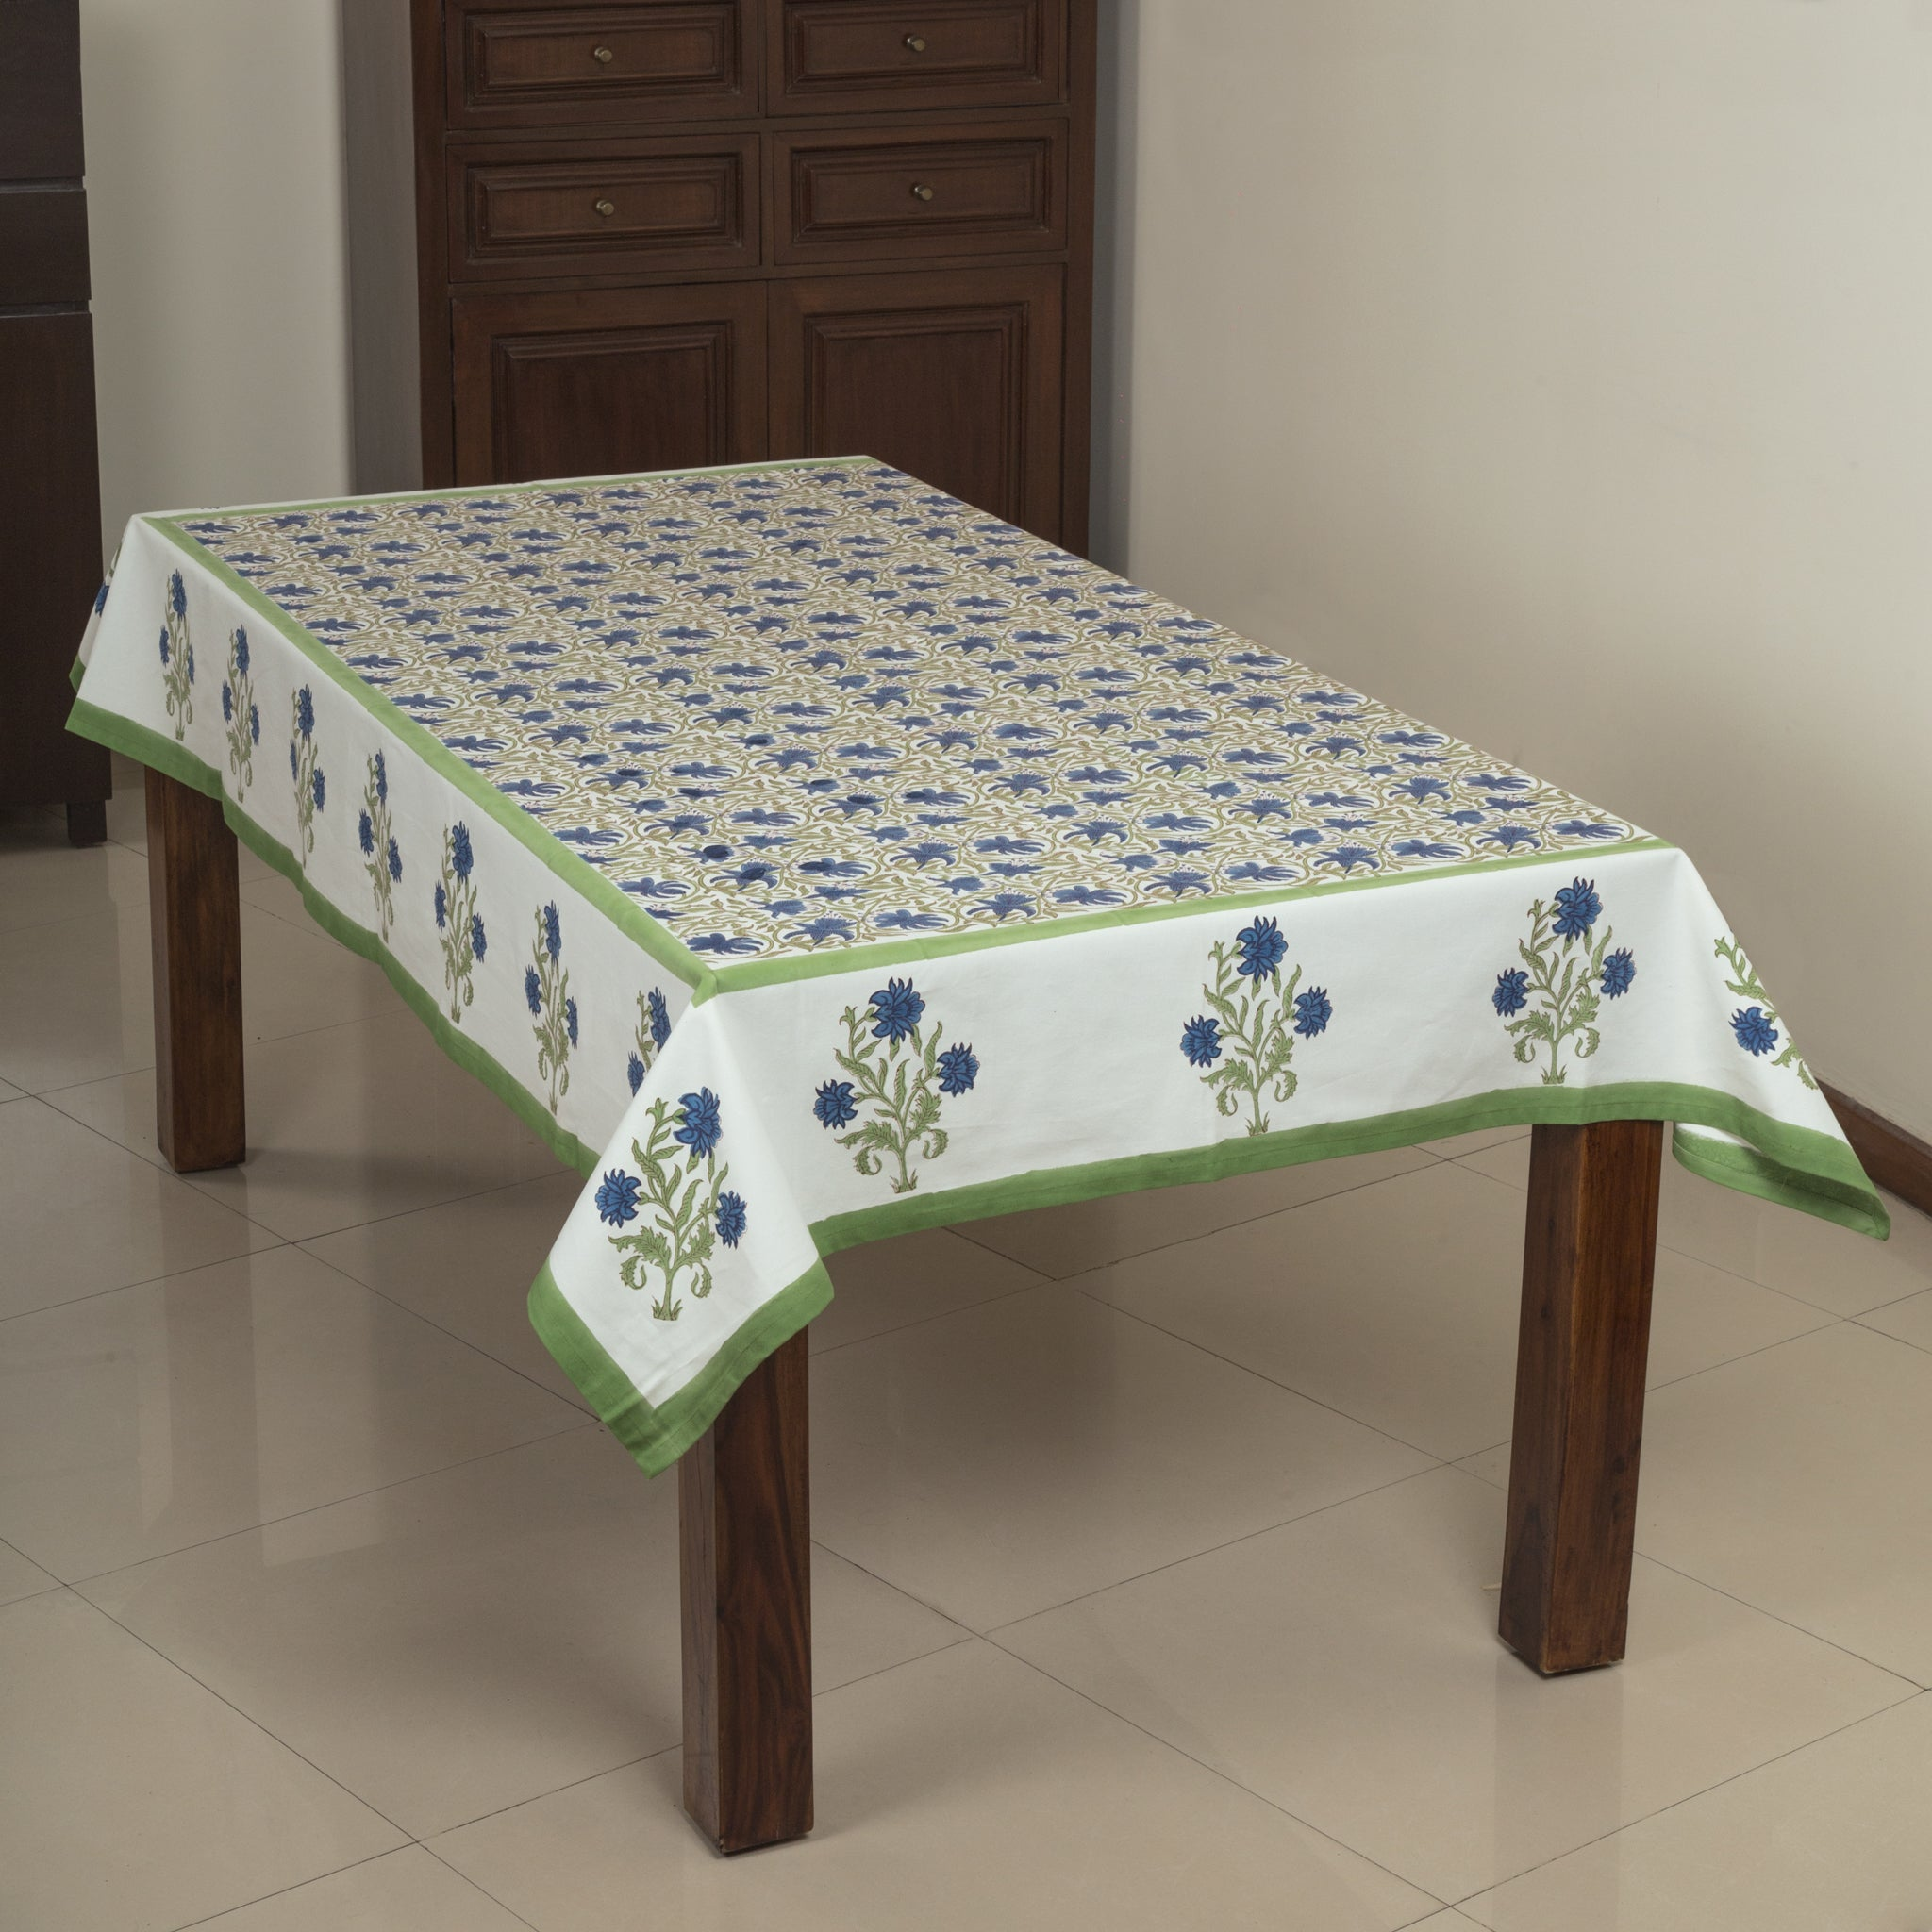 Flower Railing 6 Seater Hand Block Printed, Canvas Fabric Dining Table Cover - 60x90 inch-Table Covers-CottonLanes